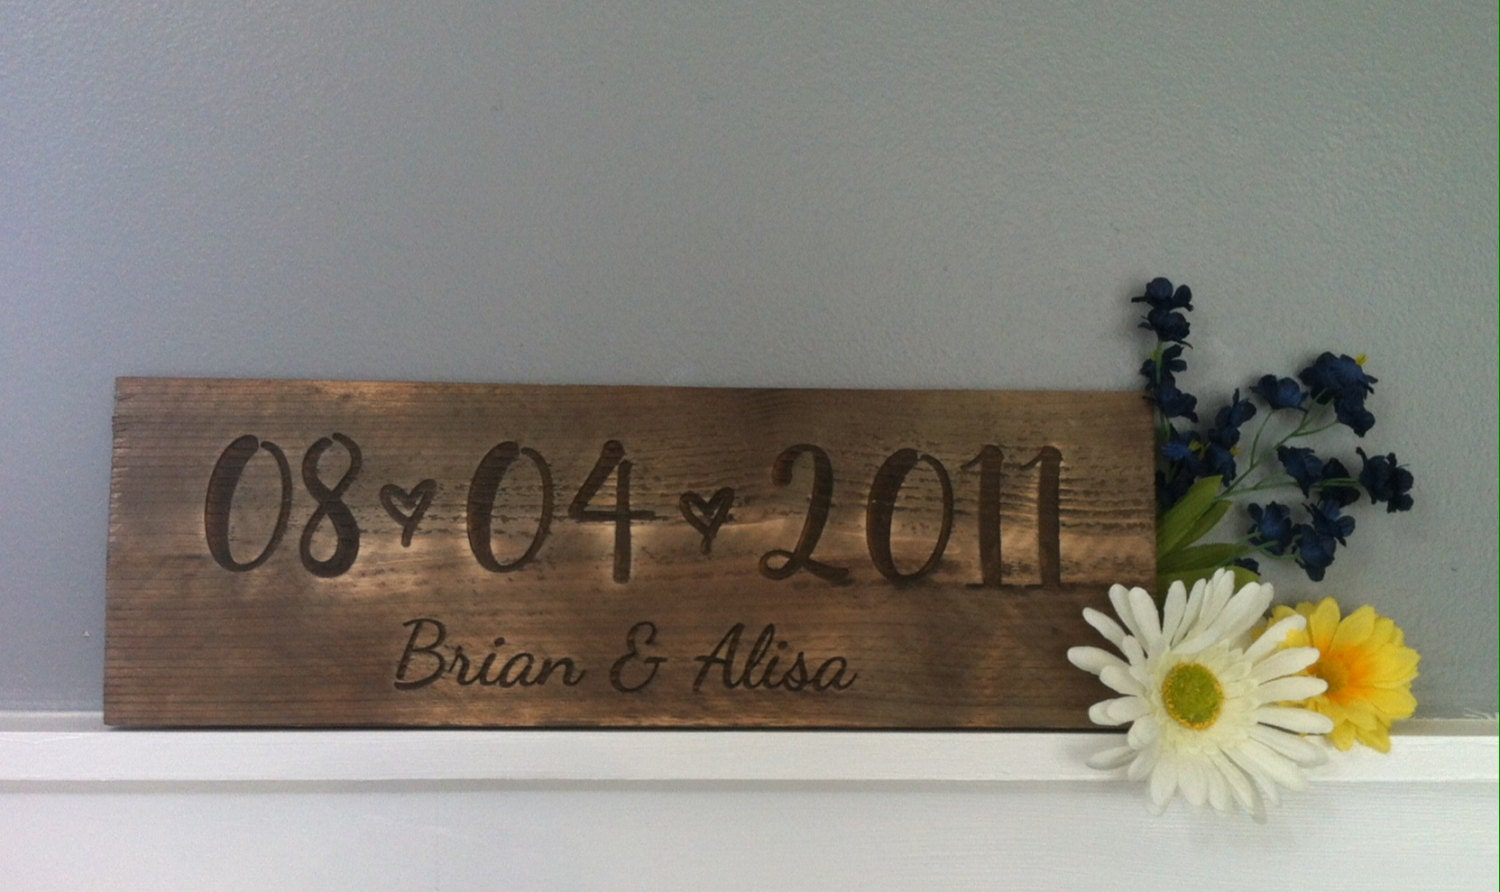 On sale rustic wood sign wedding decor laser engraved for Home decor items on sale